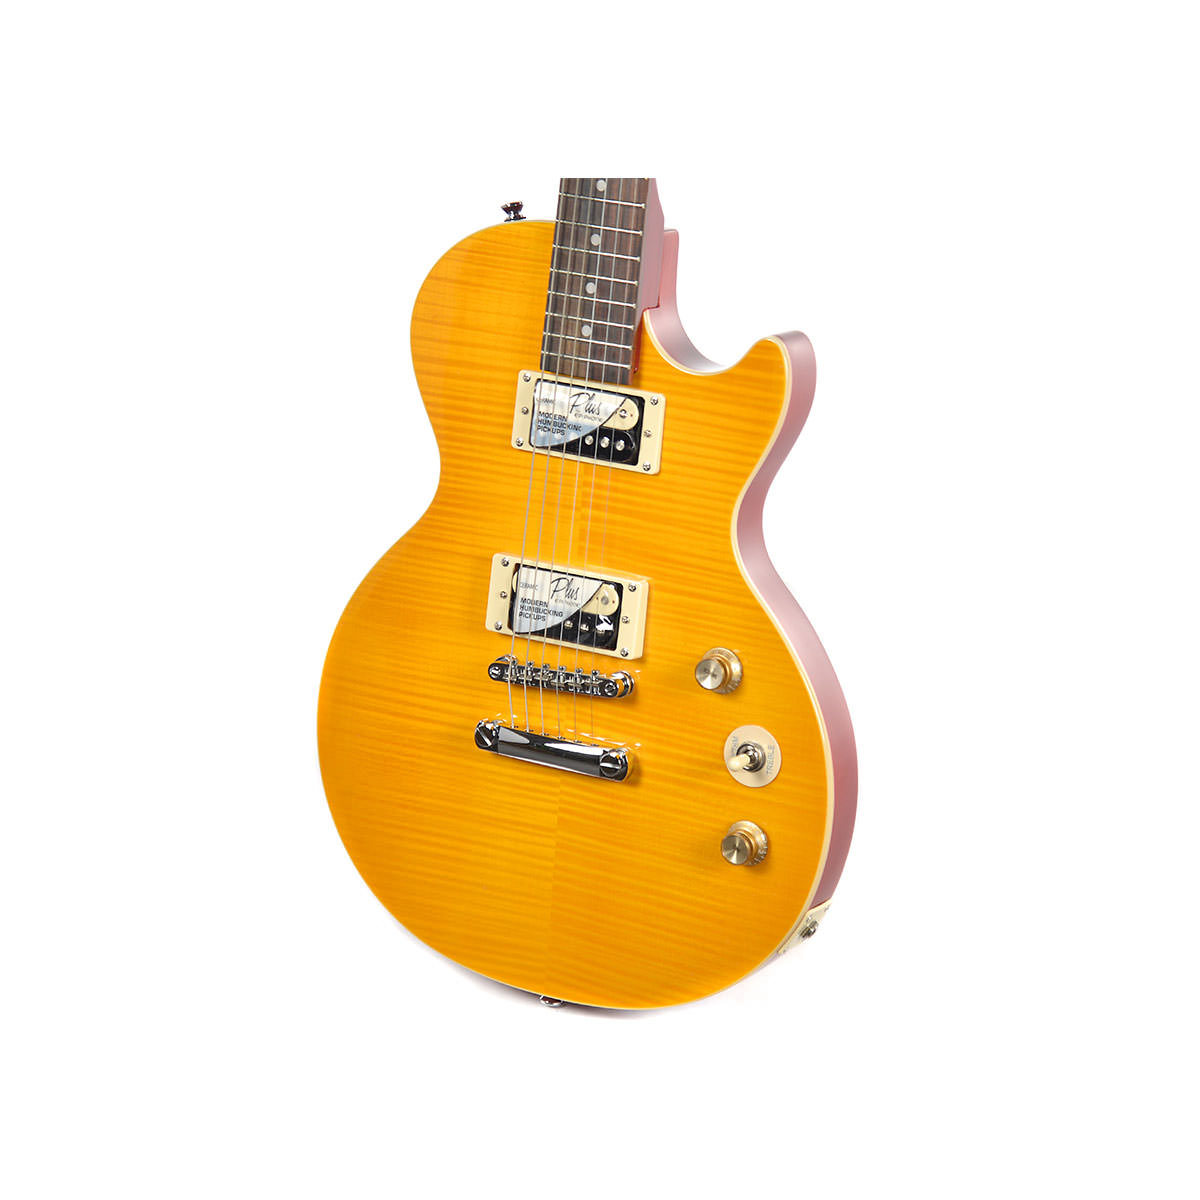 epiphone slash afd les paul special ii guitar outfit marshall music. Black Bedroom Furniture Sets. Home Design Ideas